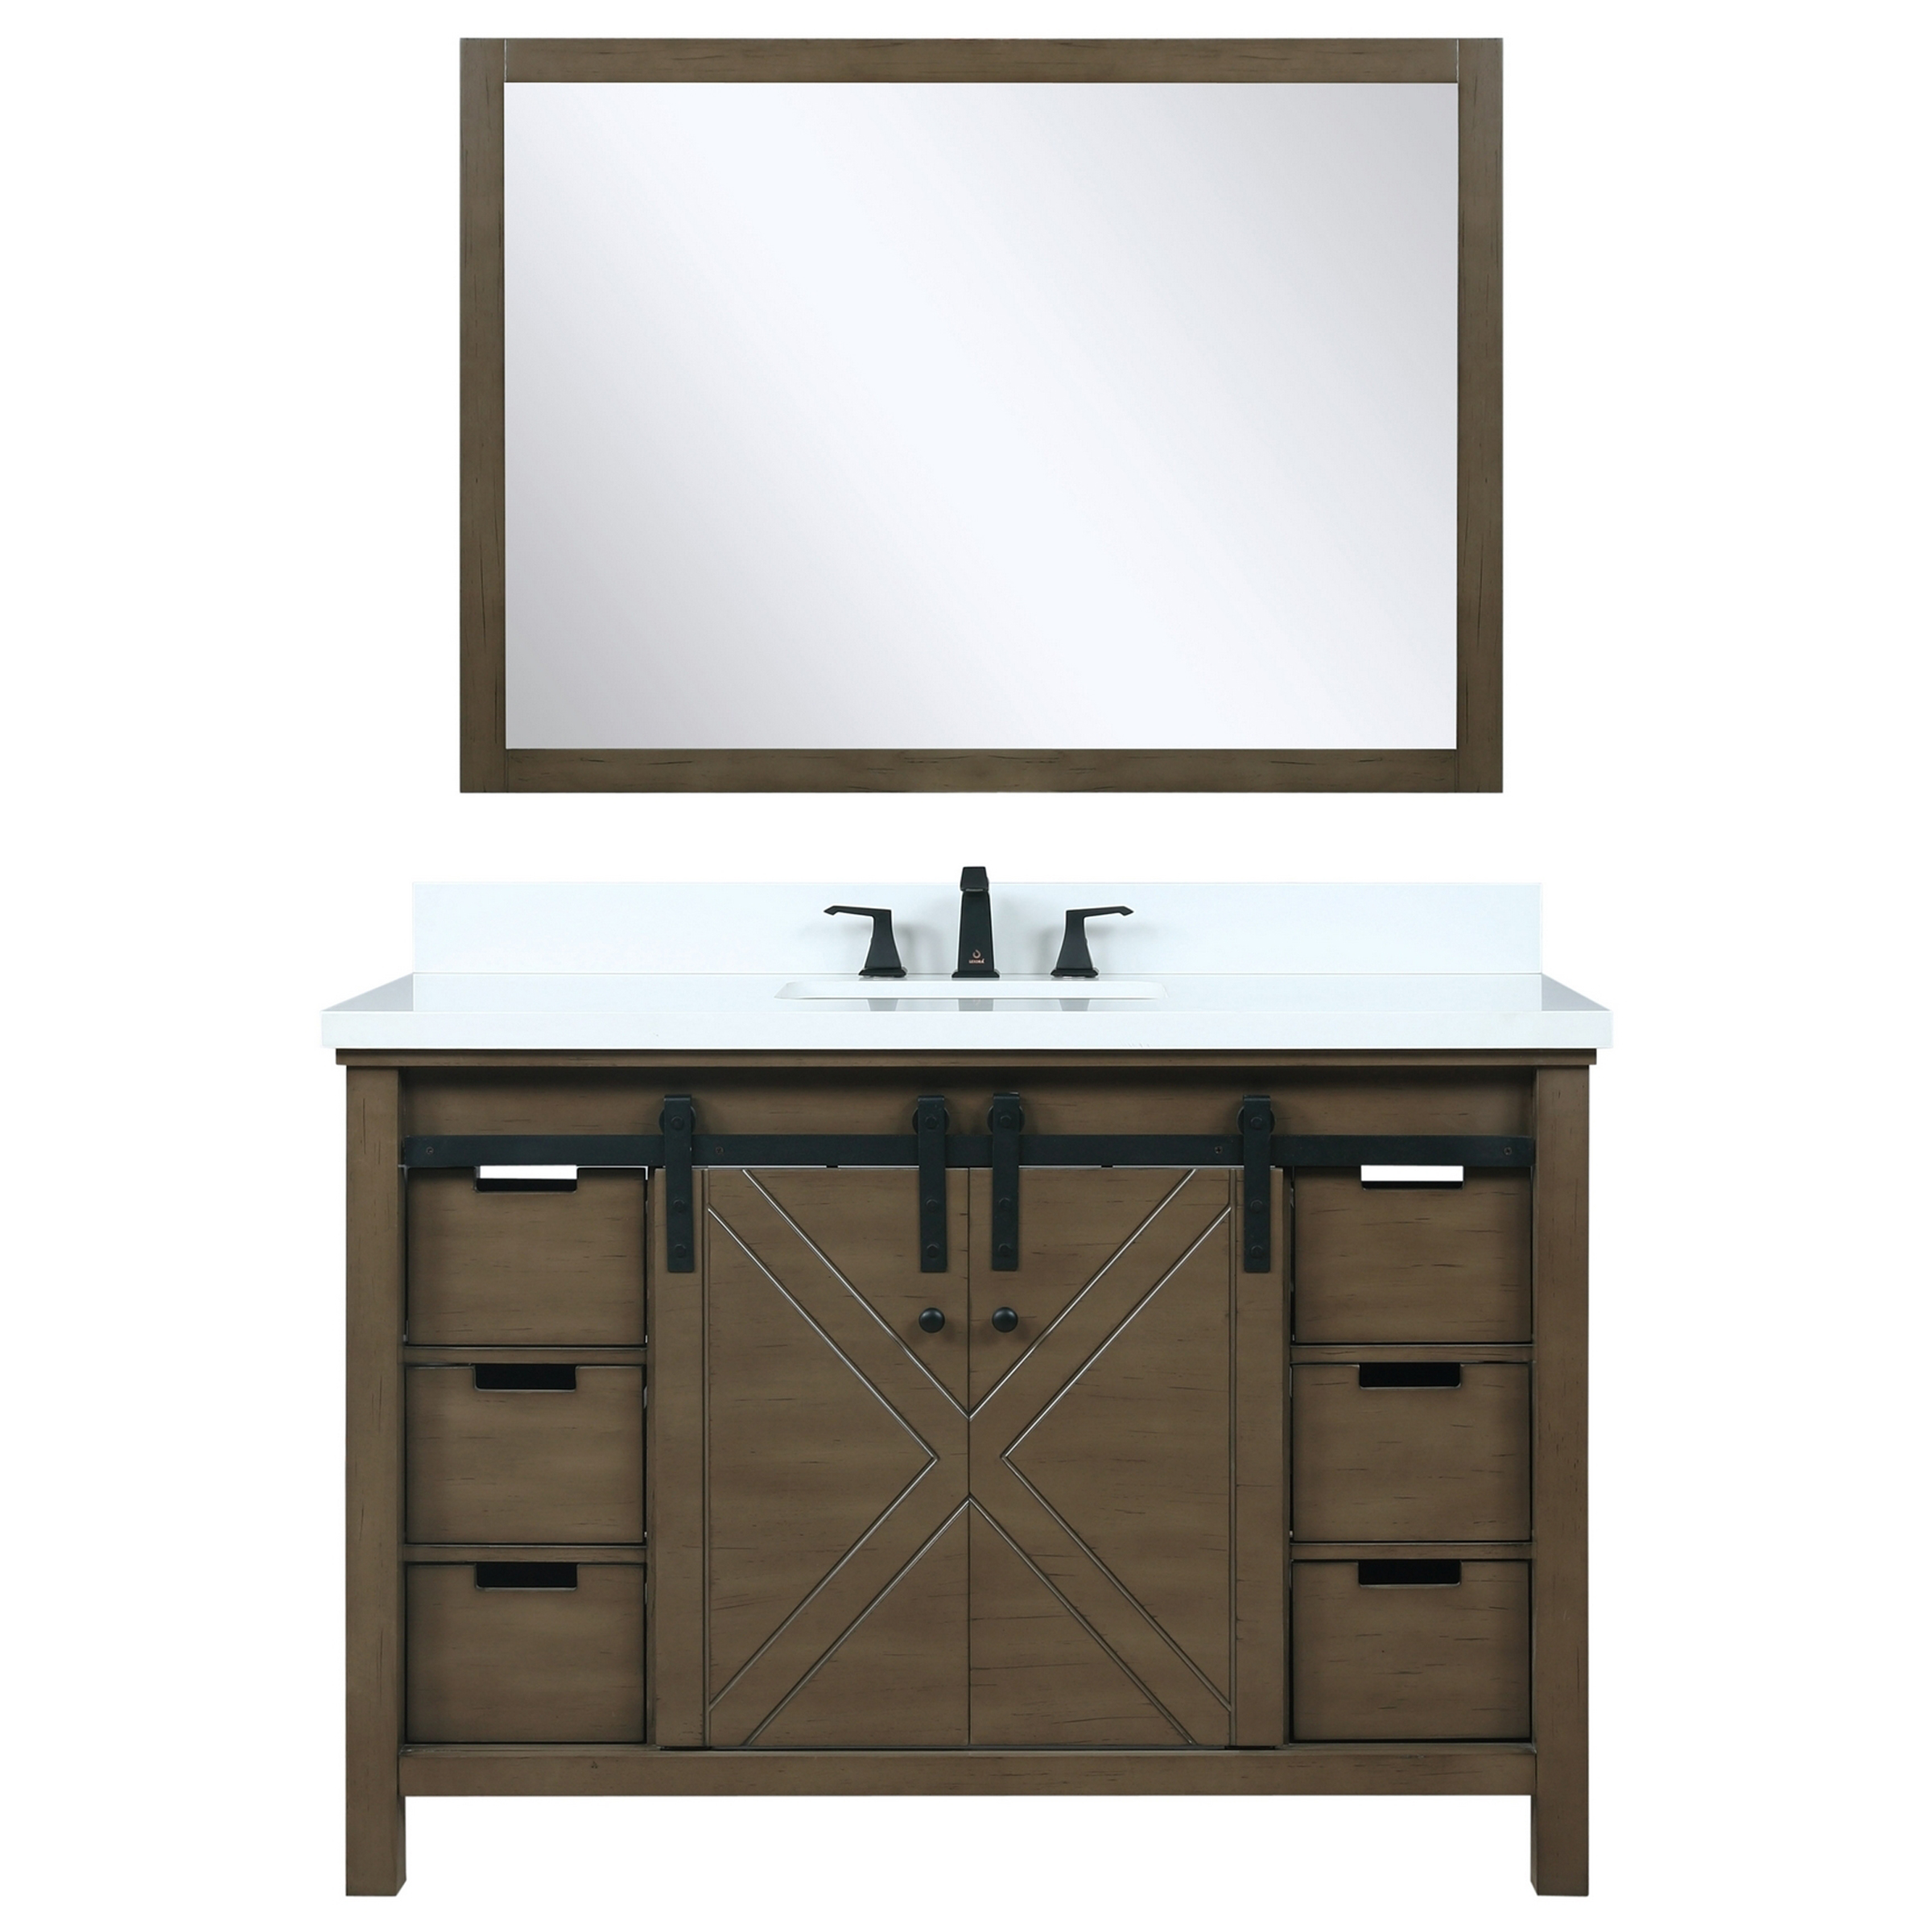 """48"""" Rustic Brown Vanity Cabinet Only with Countertop and Mirror Options"""